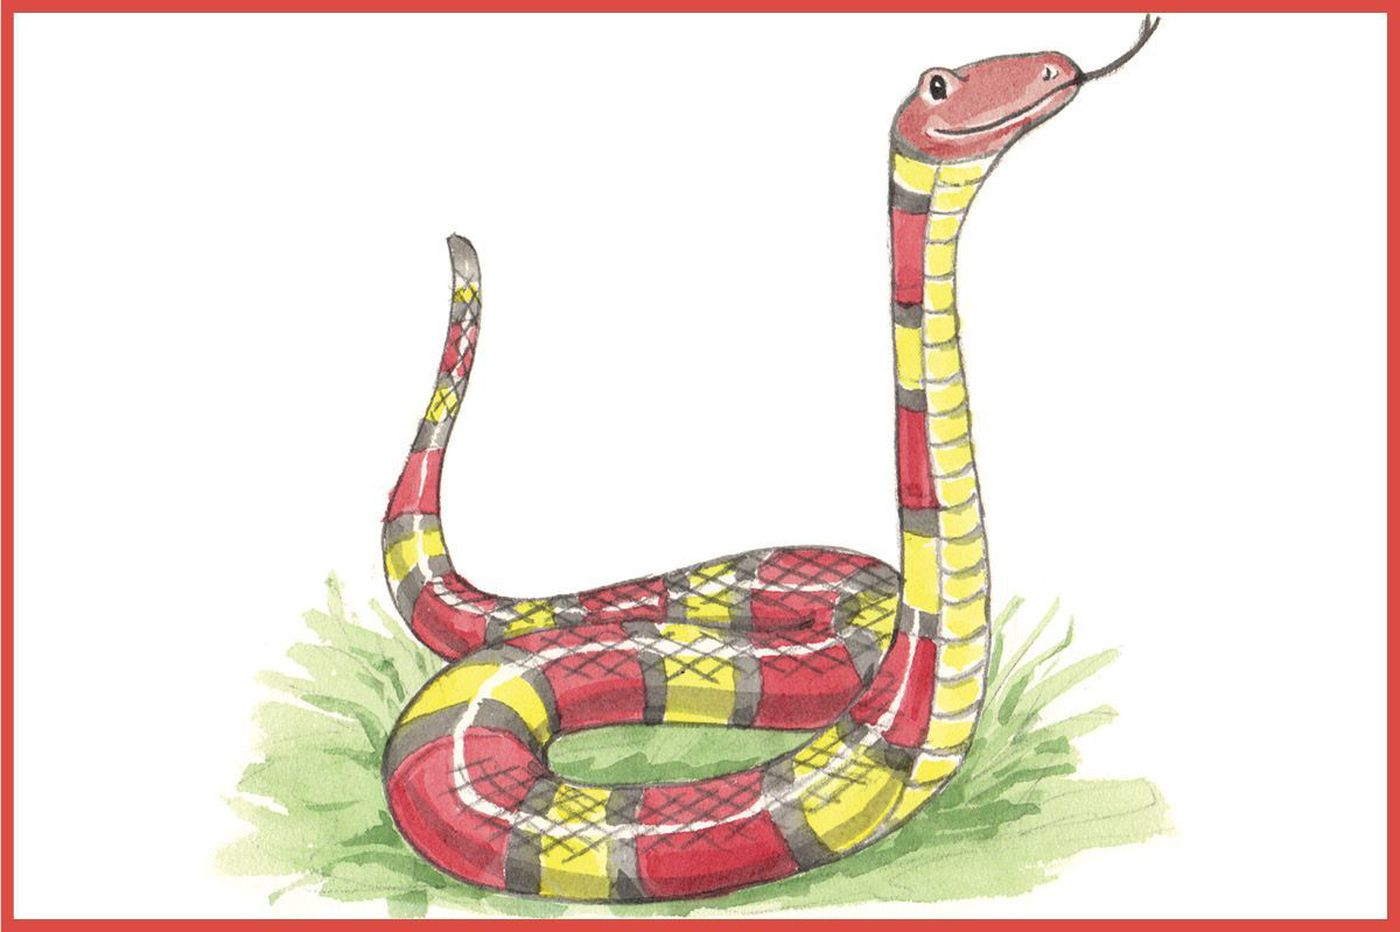 Calling all kids: Draw this friendly milk snake for a chance to have your artwork published